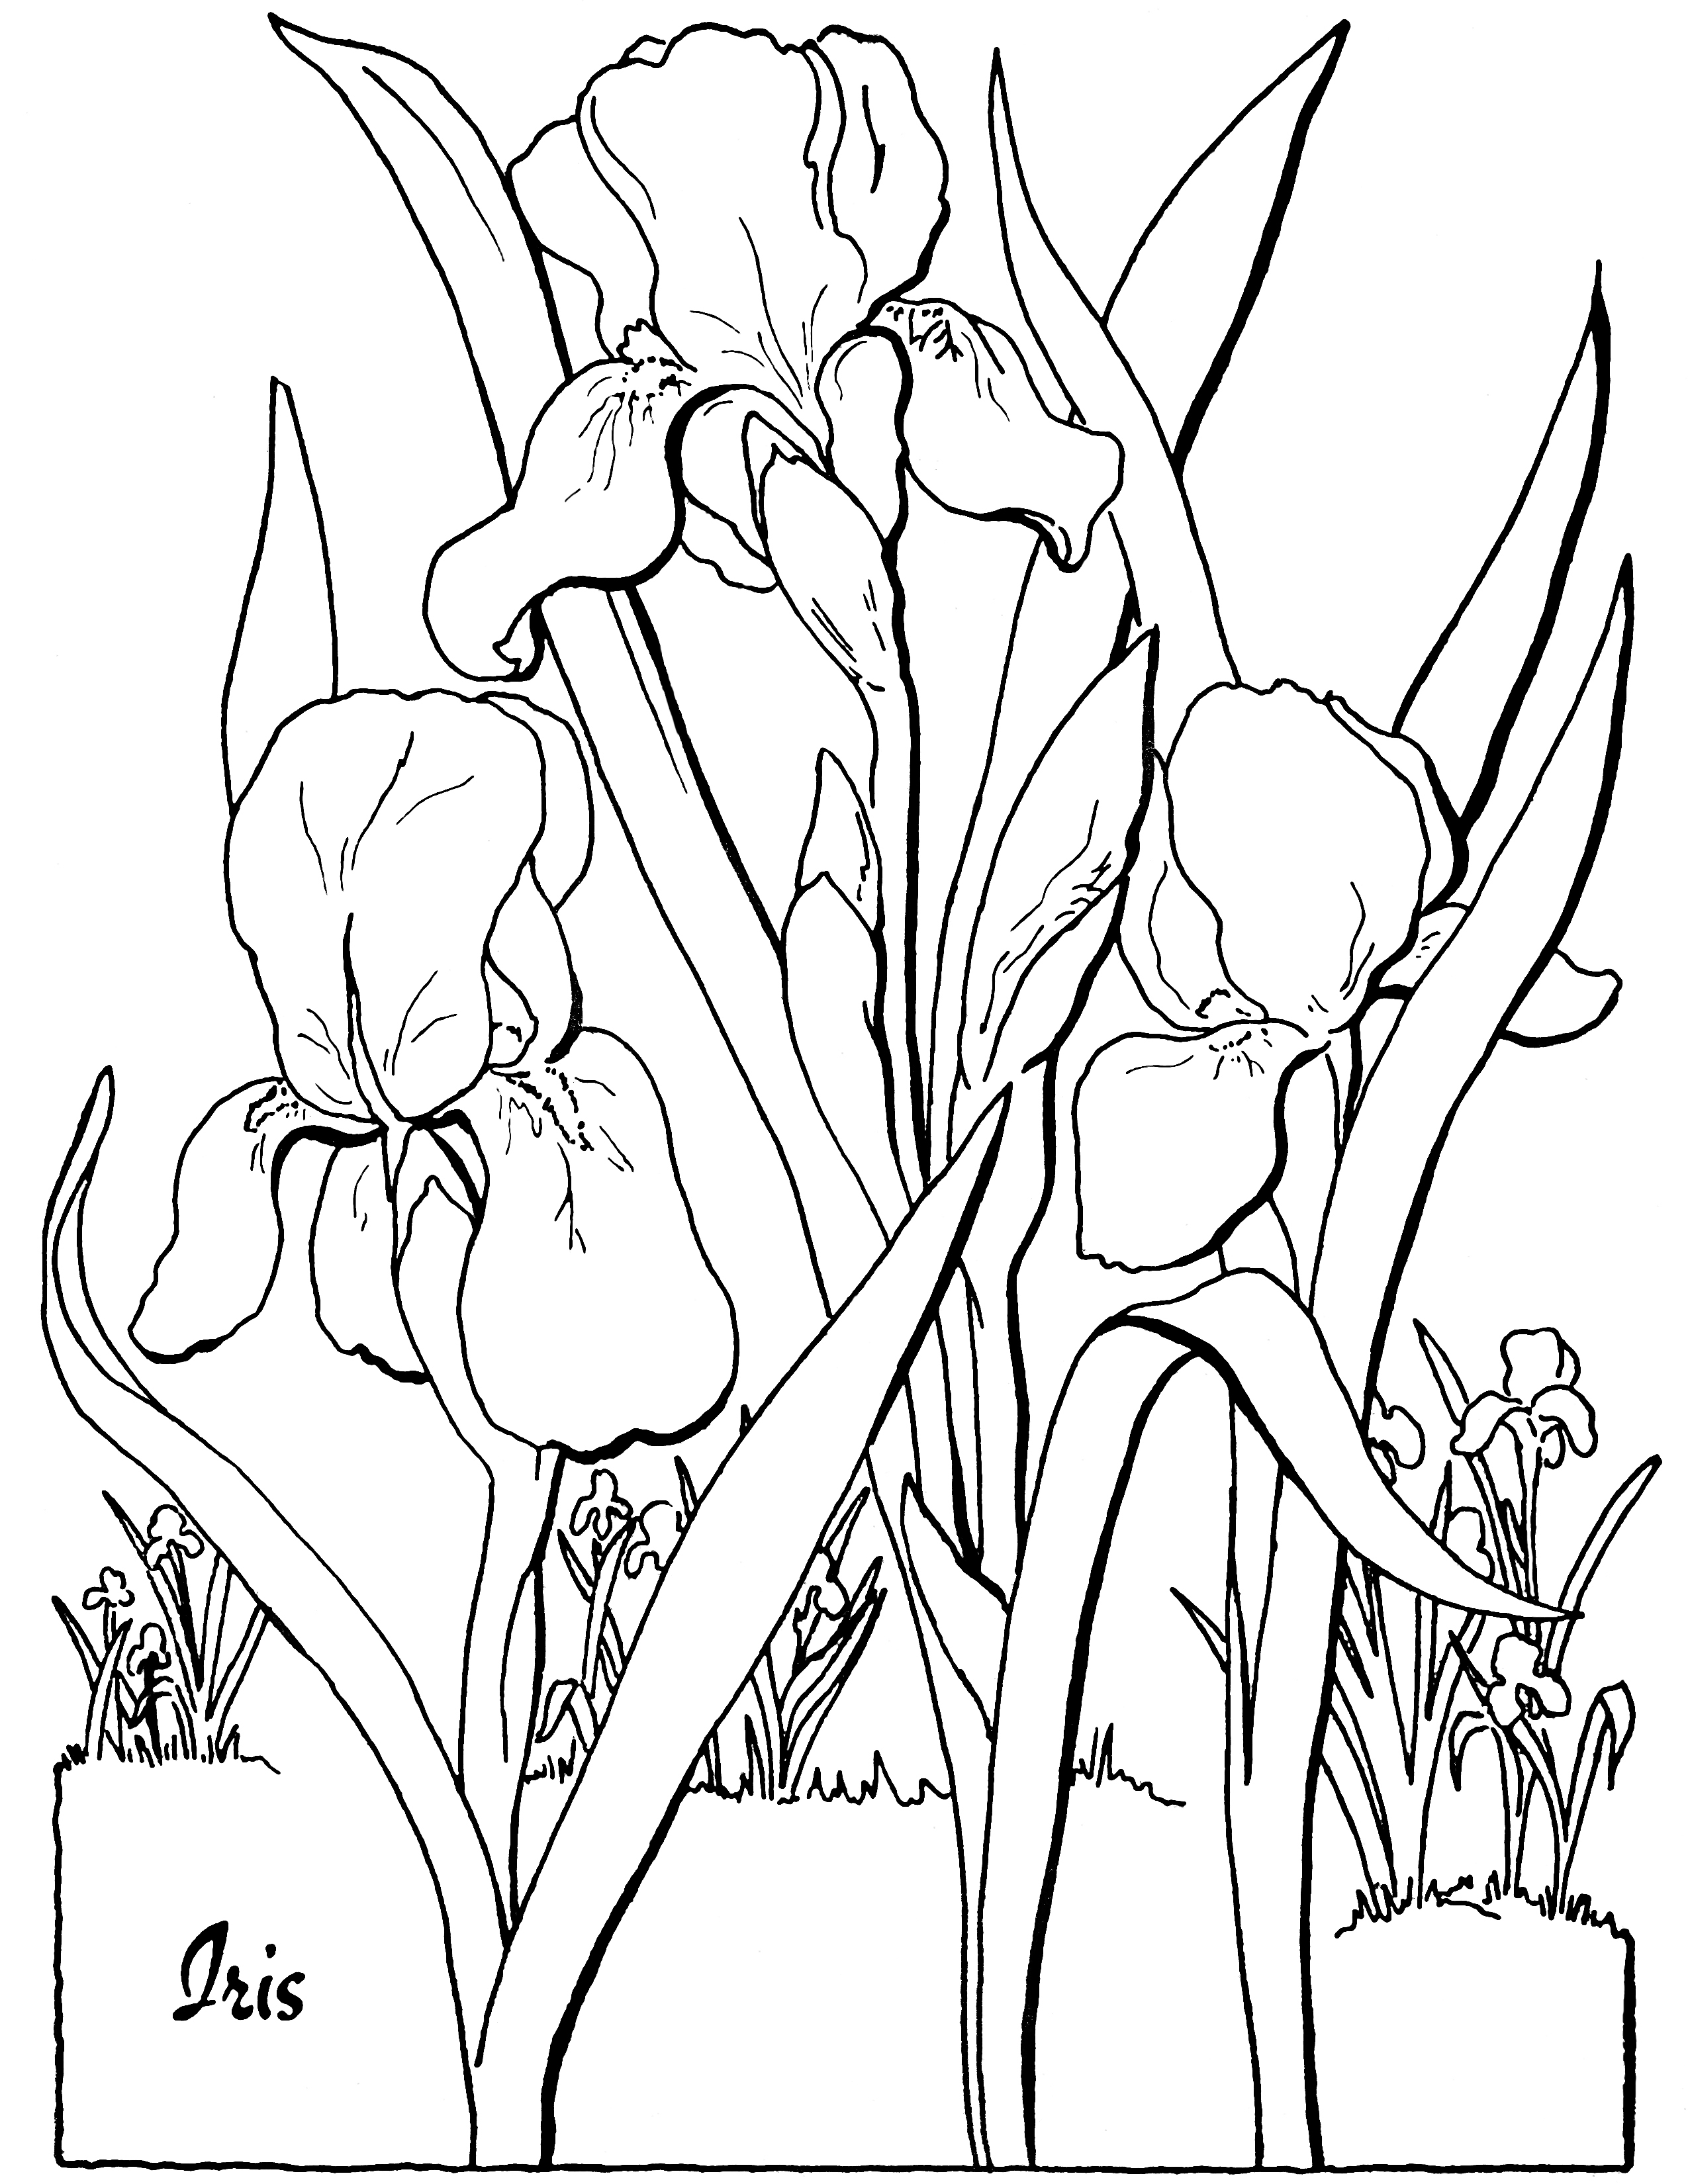 adults coloring pages free adult coloring pages happiness is homemade adults pages coloring